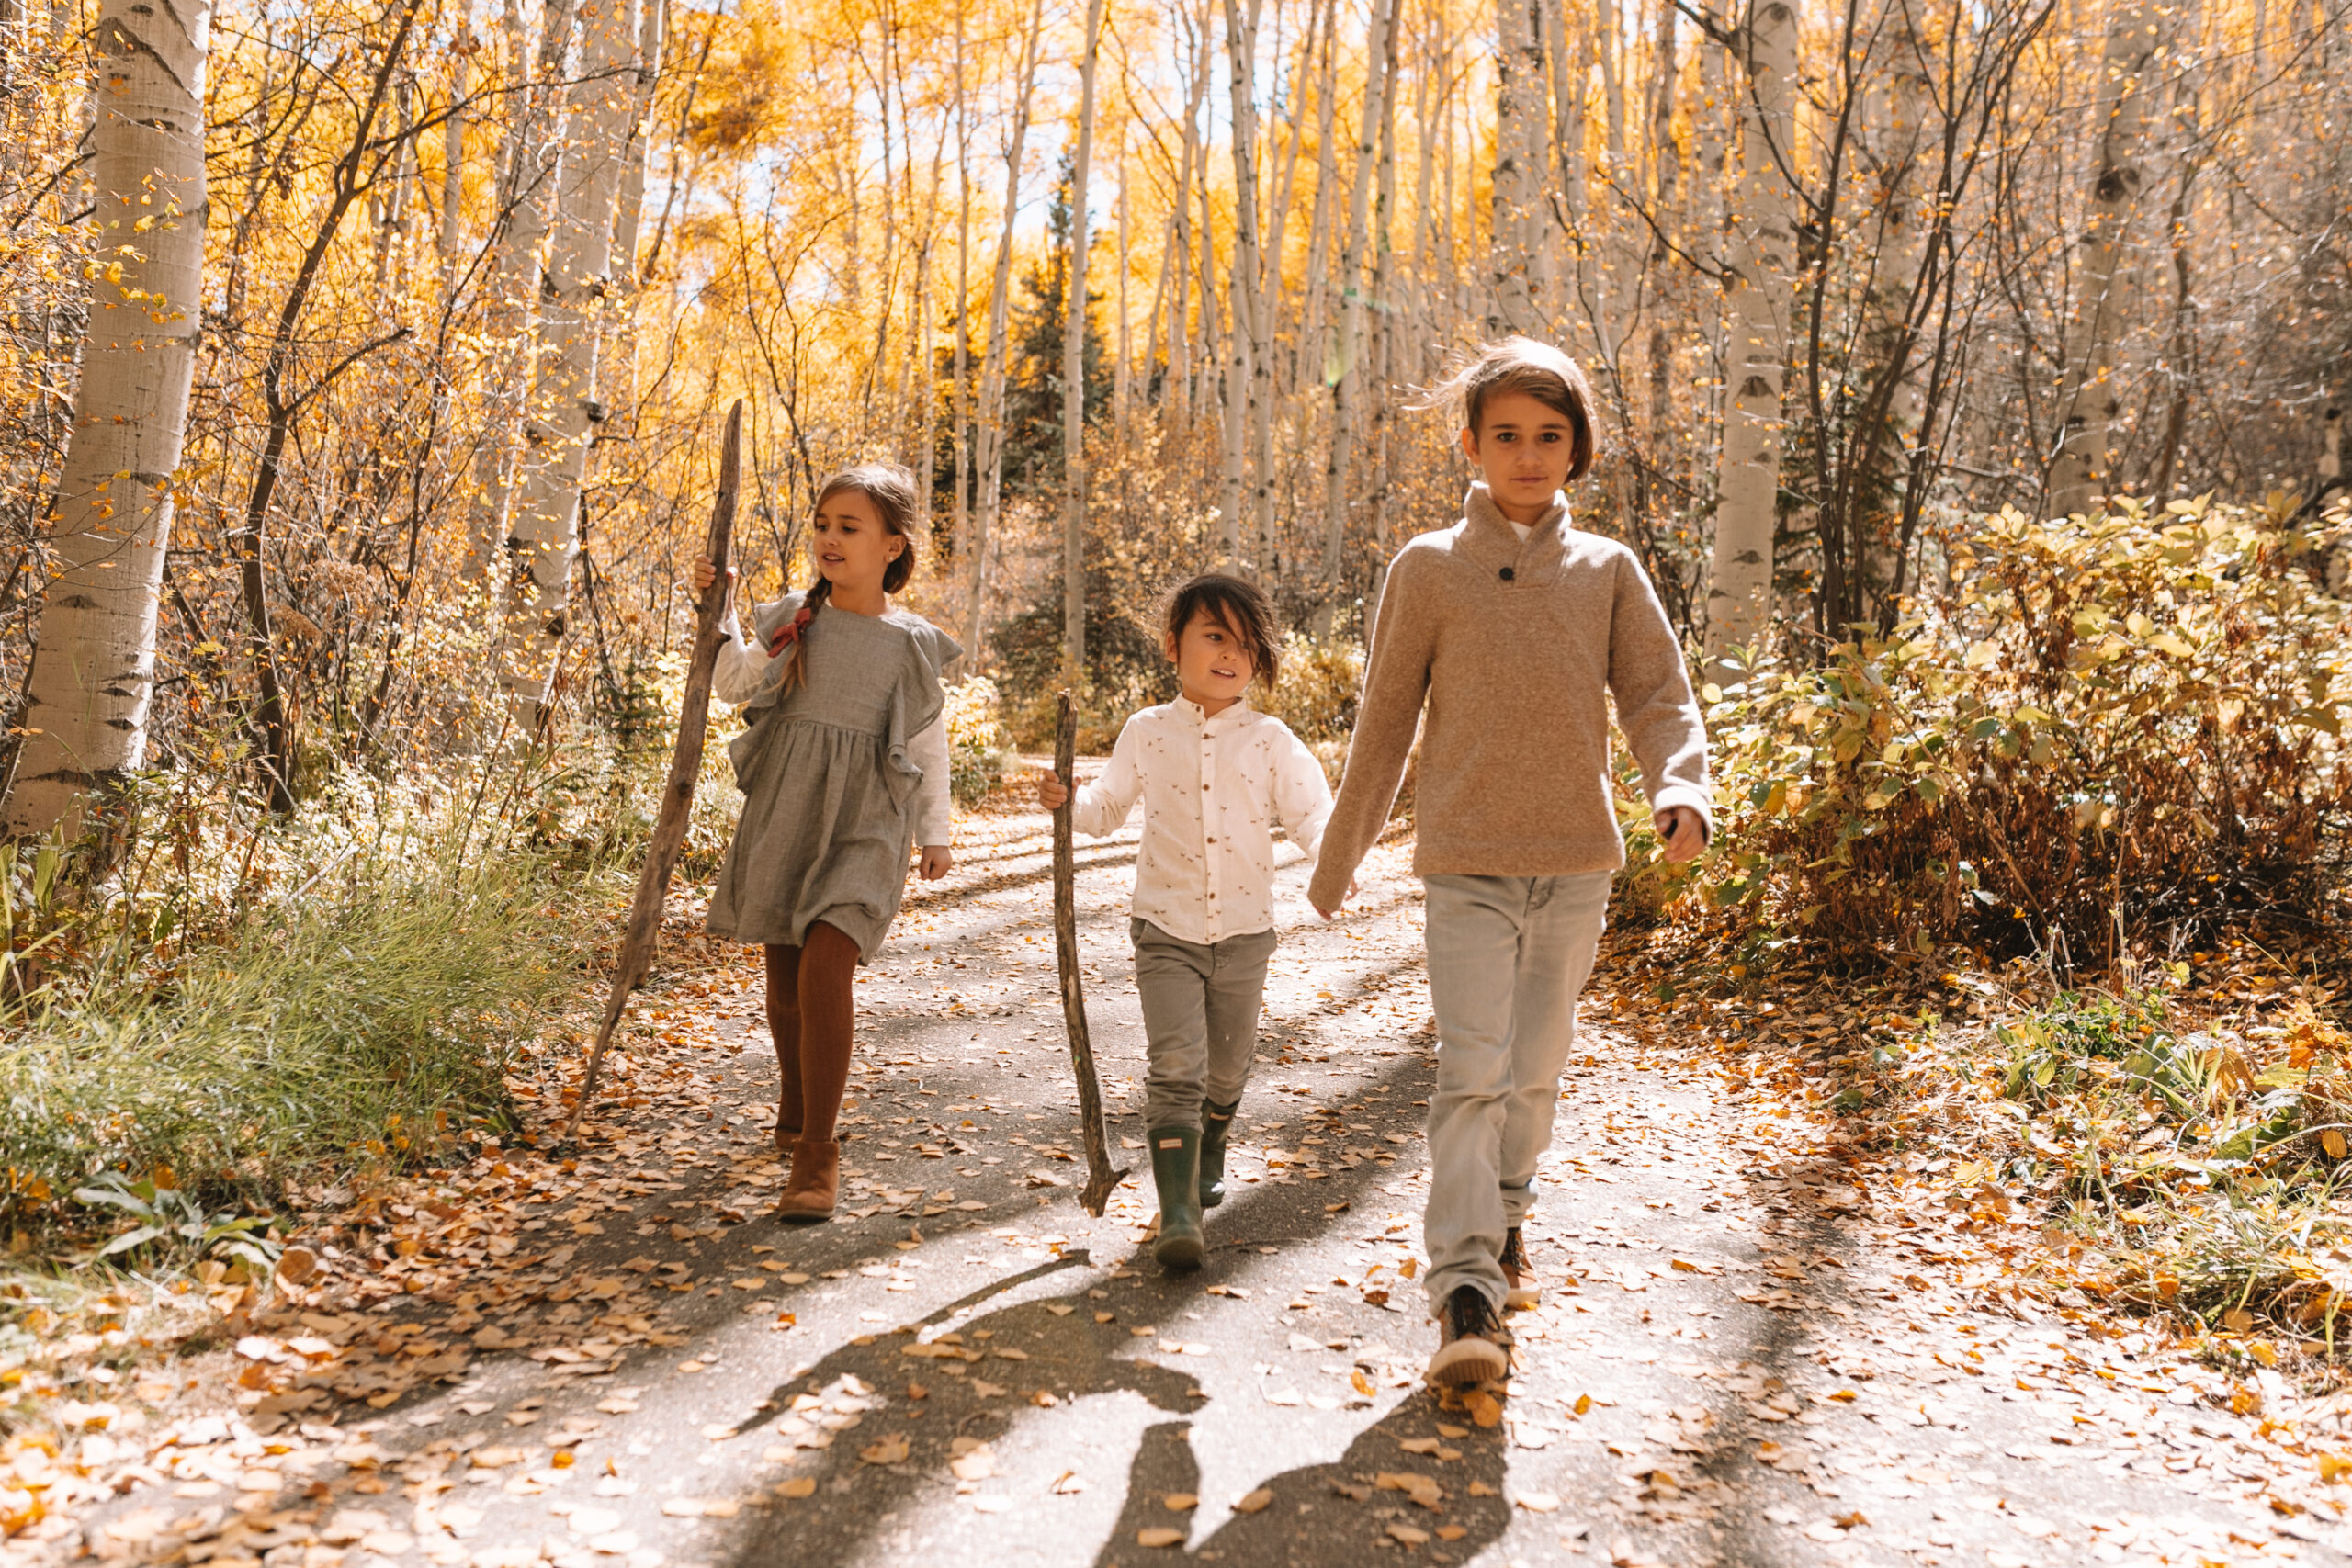 my three musketeers tromping through the fall beauty in colorado! #aspenleaves #fallinaspen #findingfall